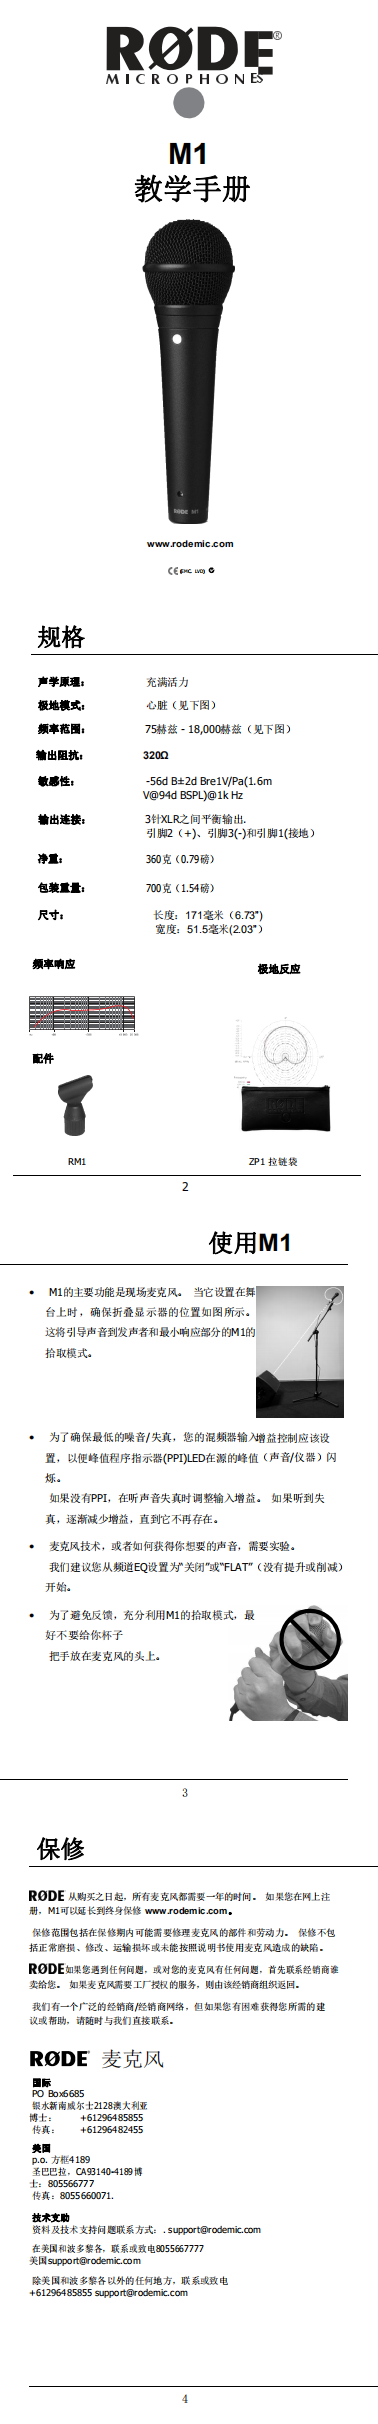 M1_product_manual_translate_Chinese_0.png